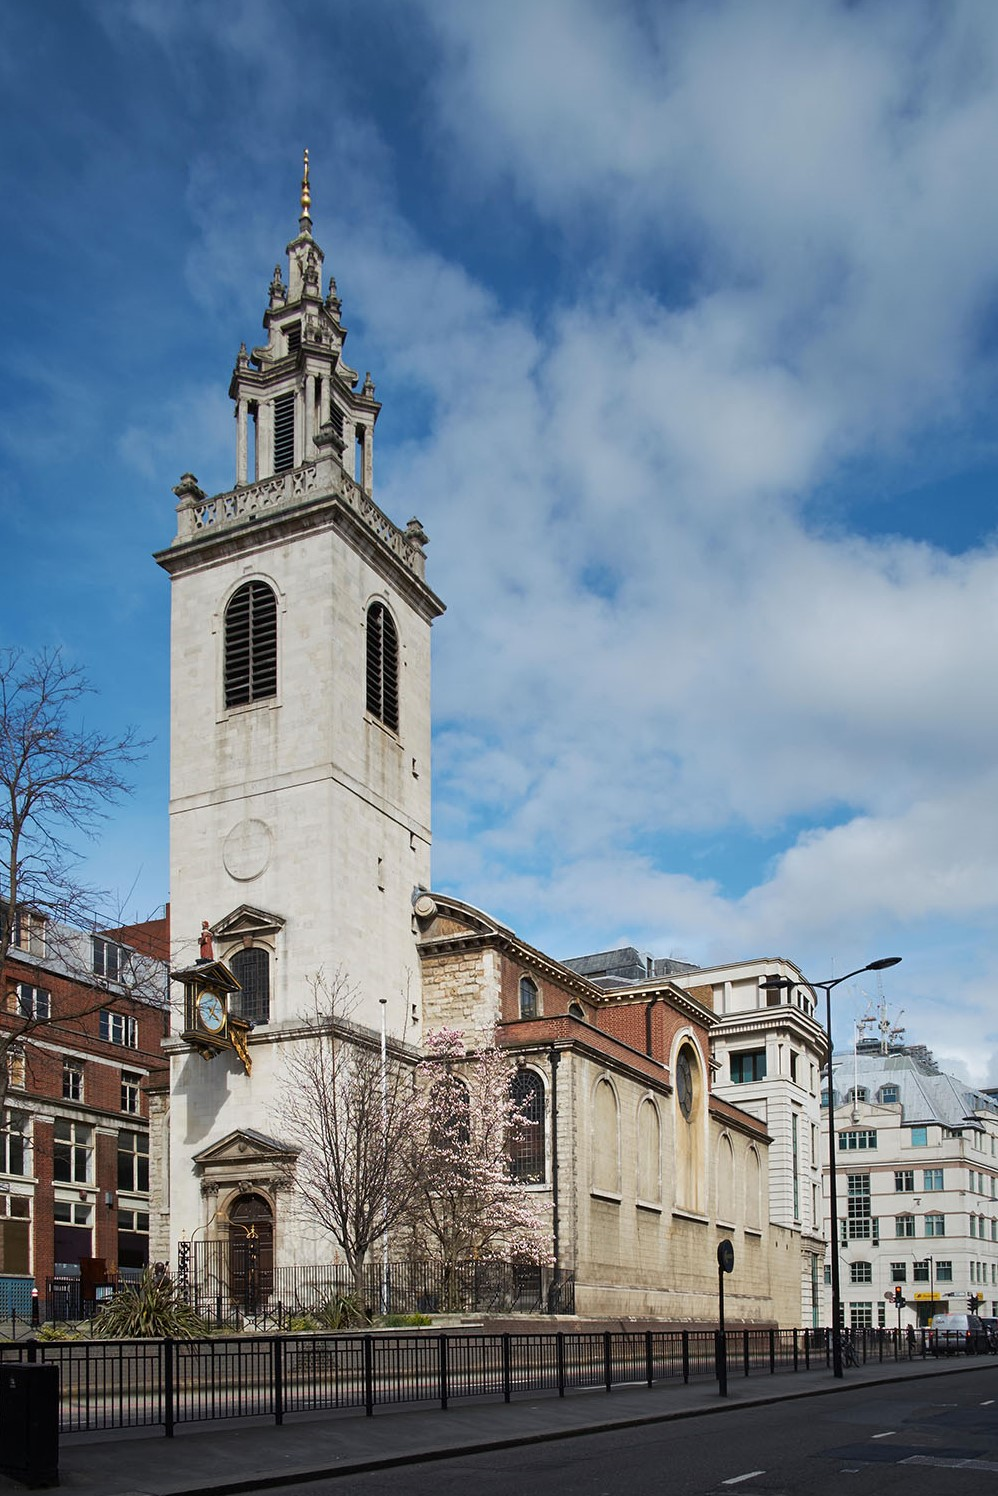 The view of St James from the south-west on Upper Thames Street